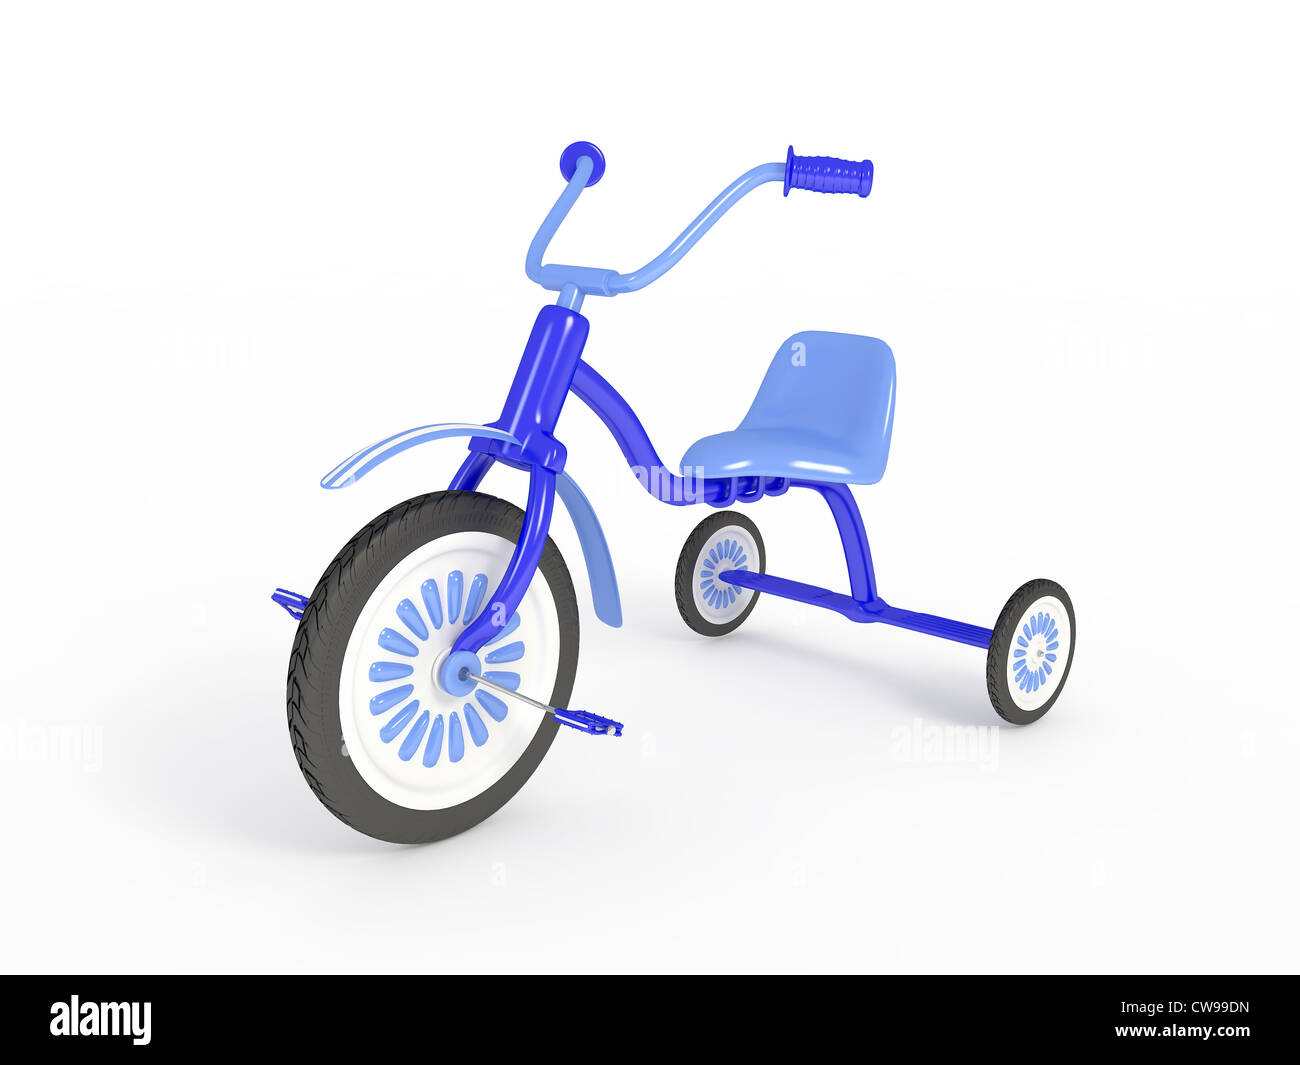 Blue tricycle - Stock Image